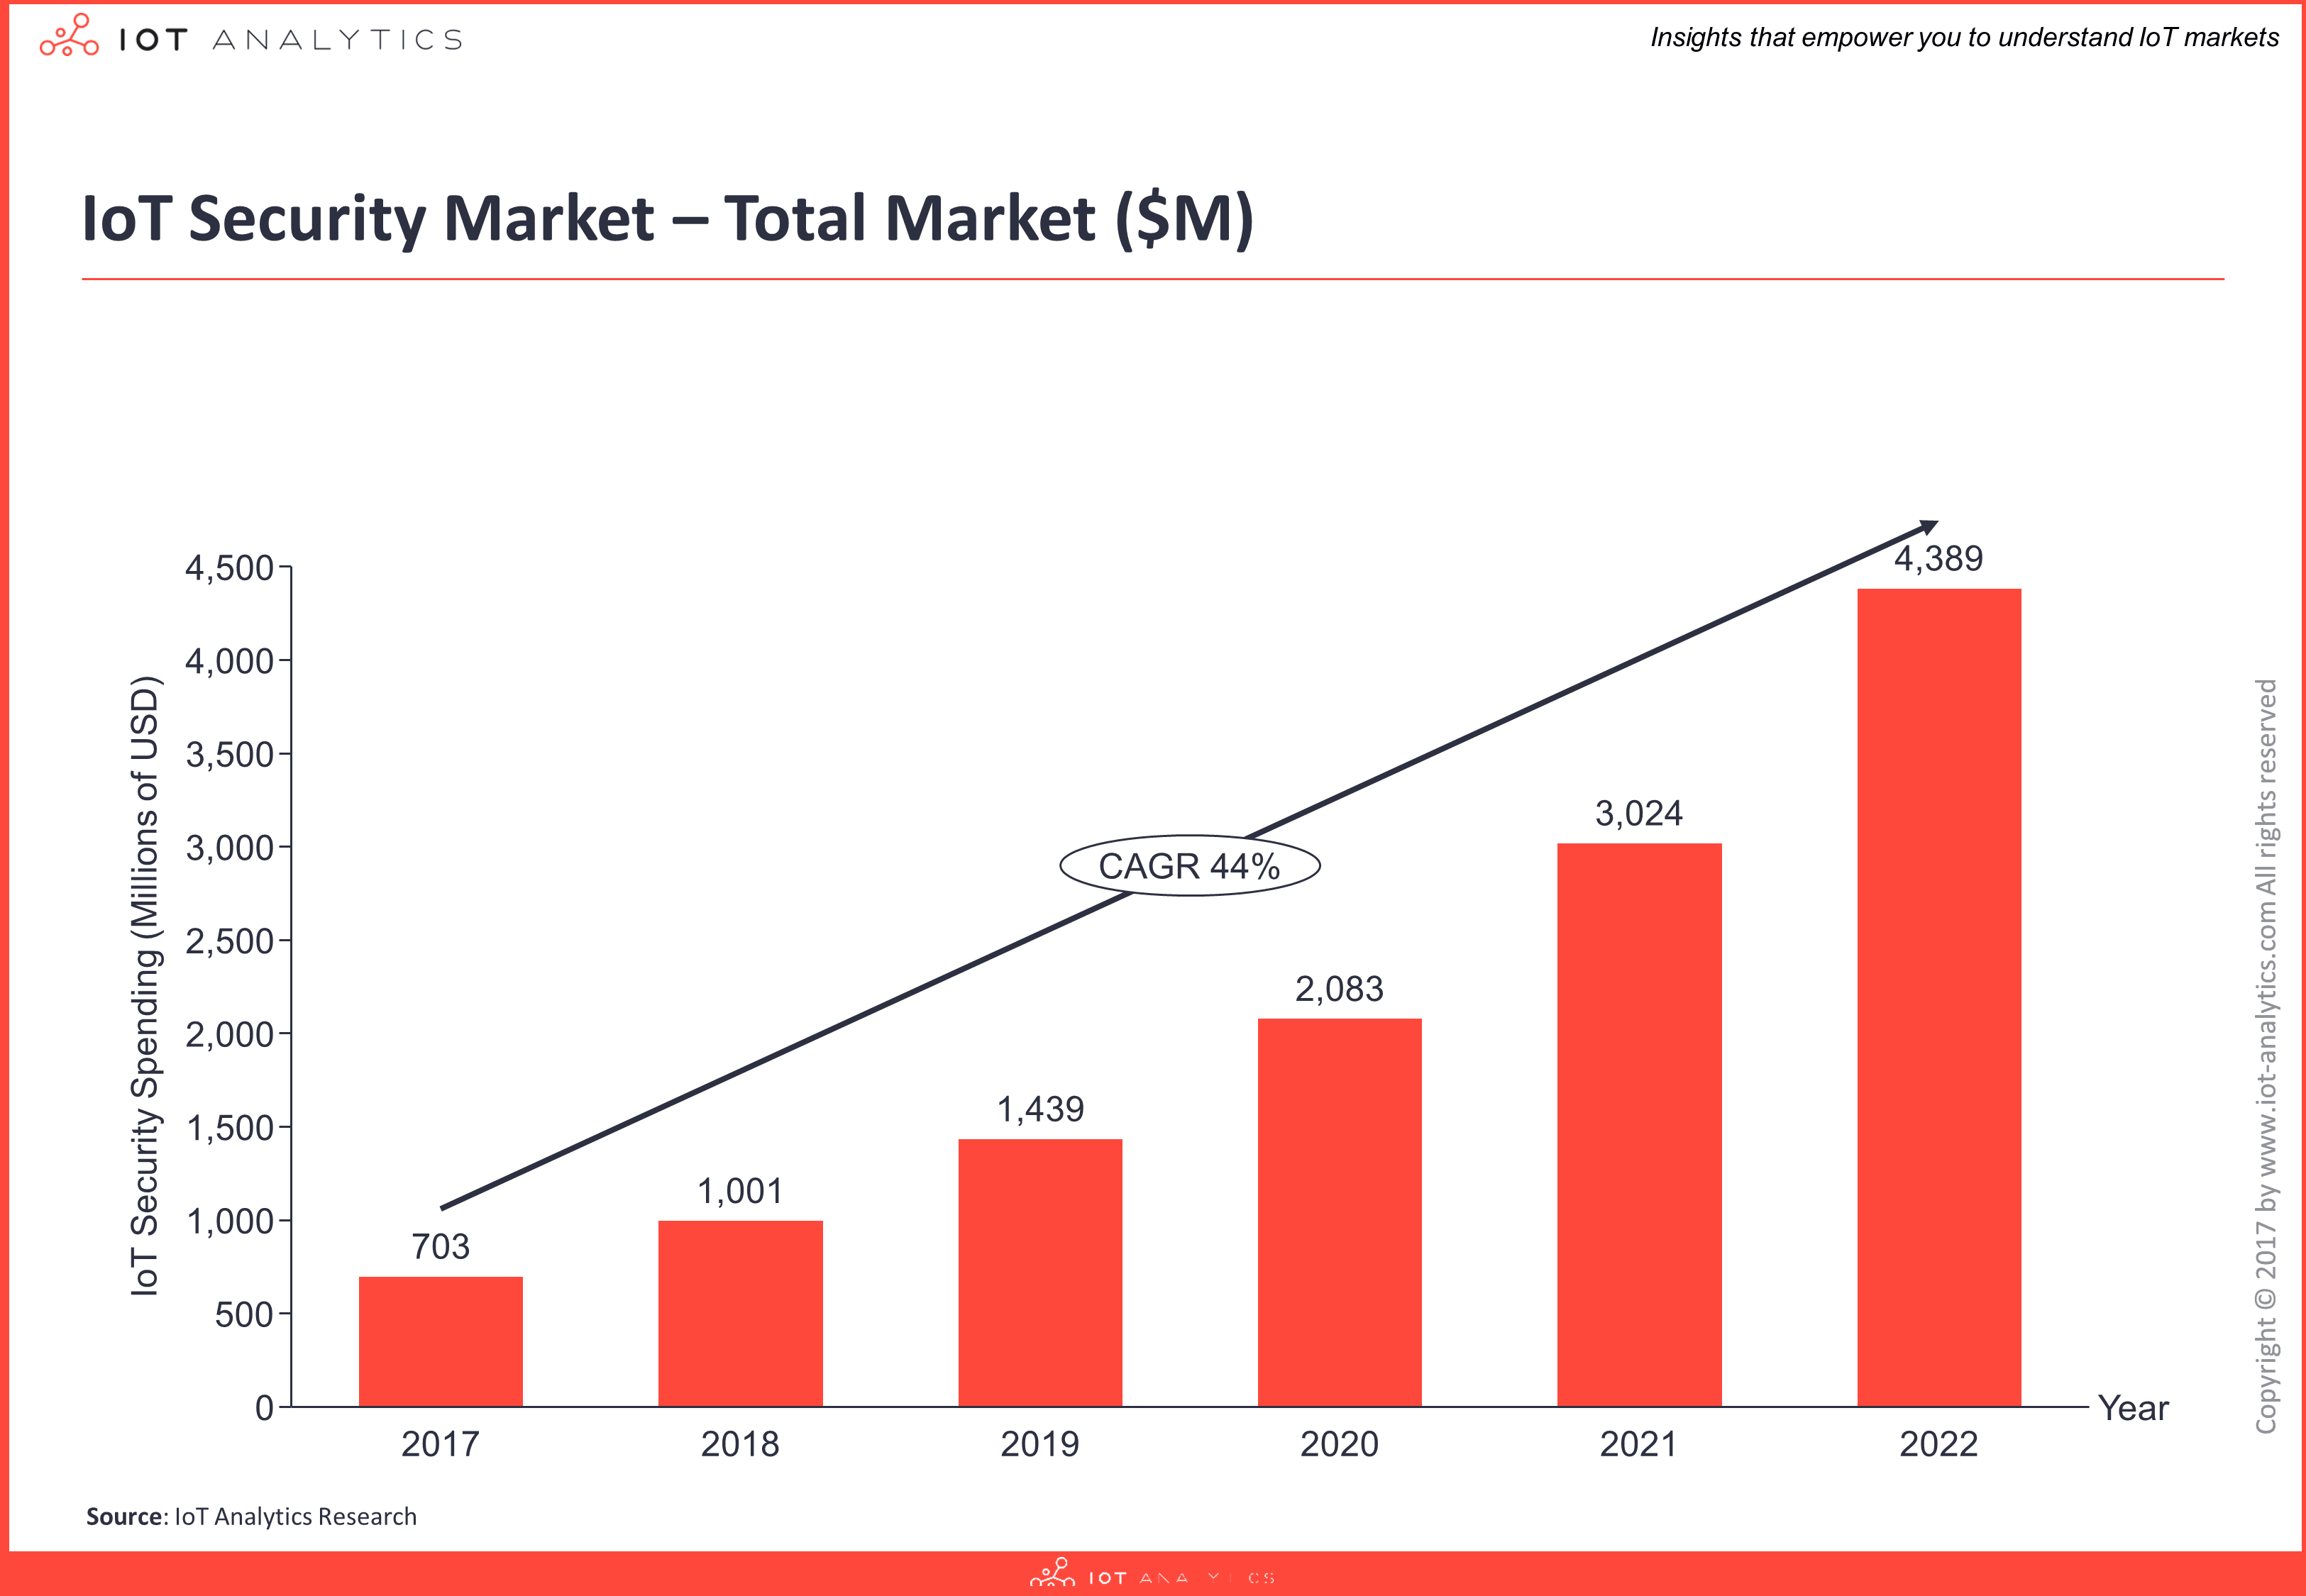 IoT Security Market - Total Market Illustration